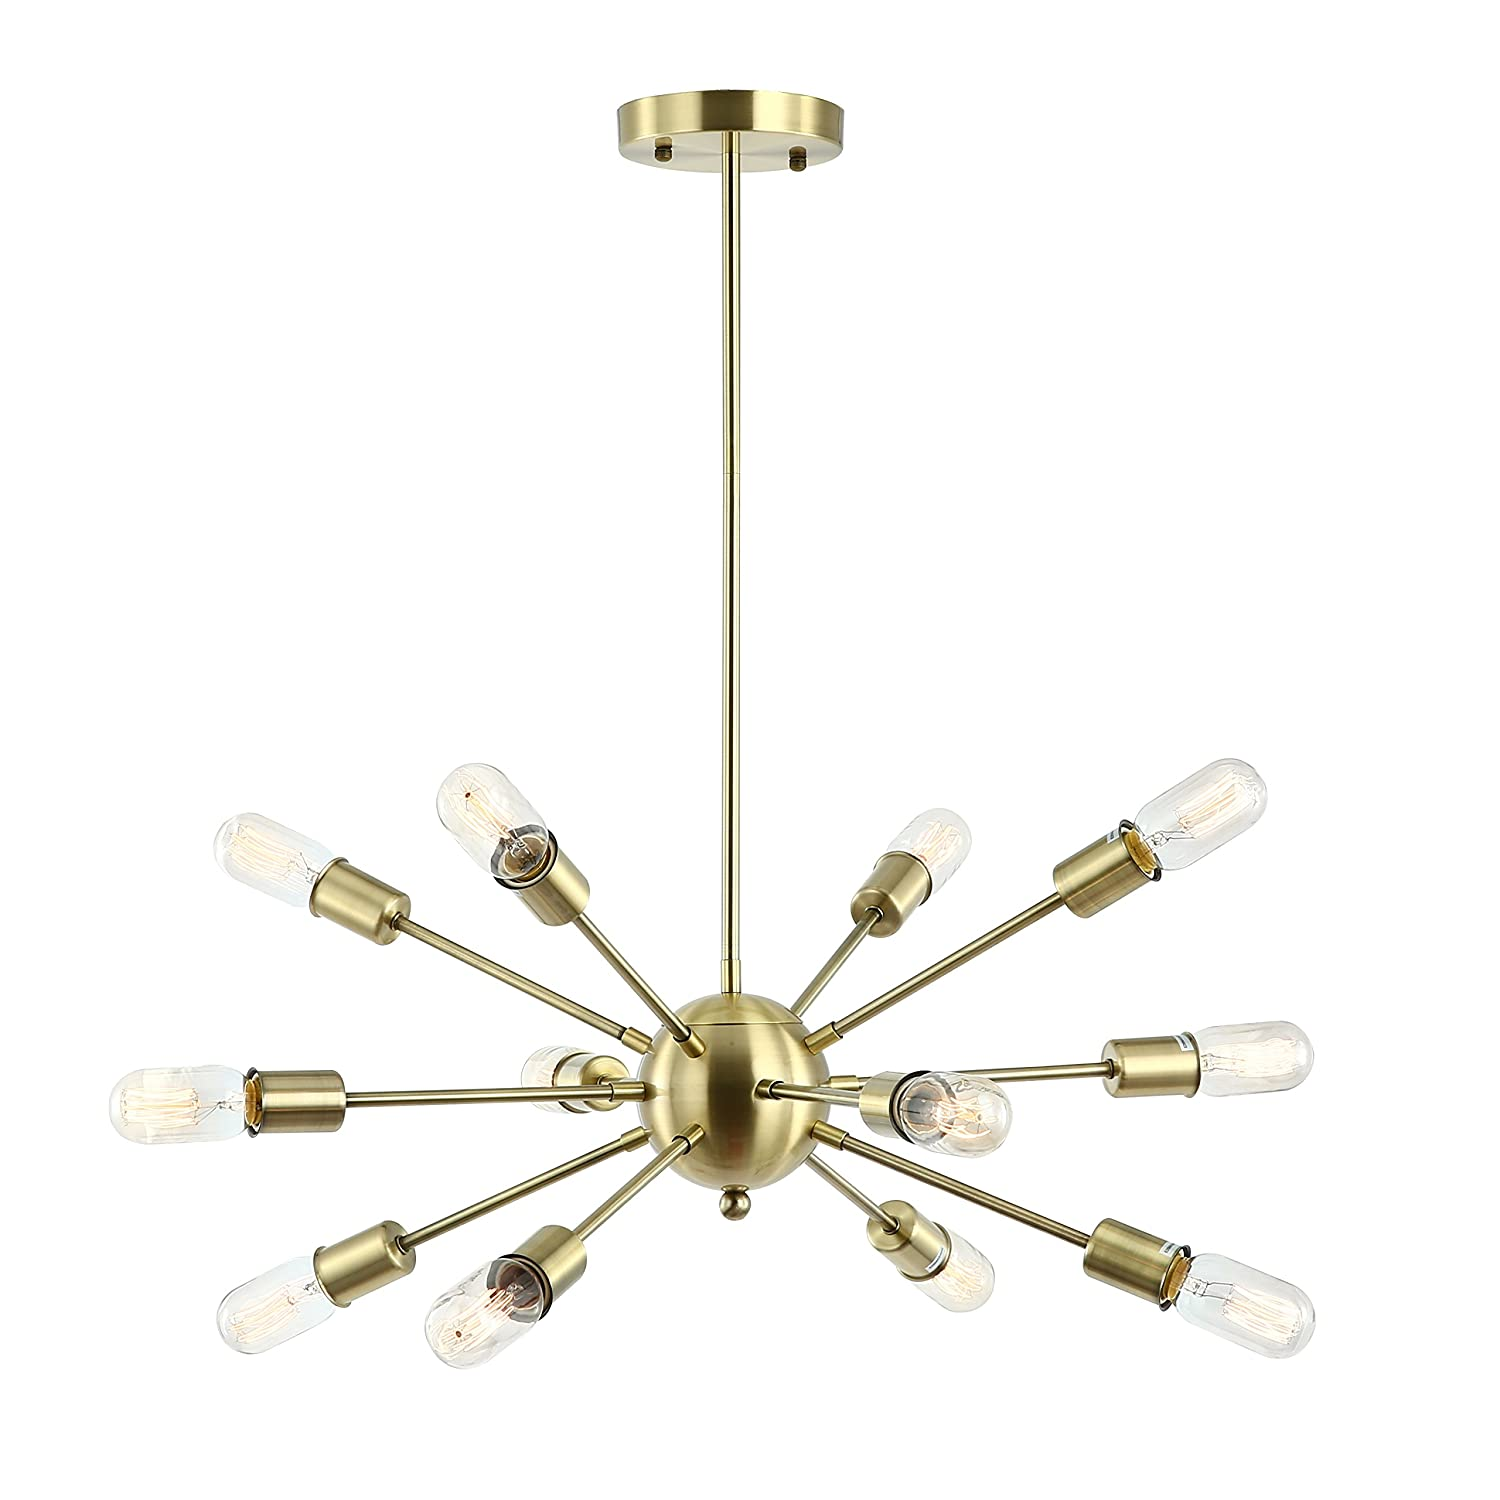 Light Society Meridia Sputnik 12 Chandelier Pendant Brushed Brass Mid Century Modern Industrial Starburst Style Lighting Fixture Ls C172 Brs